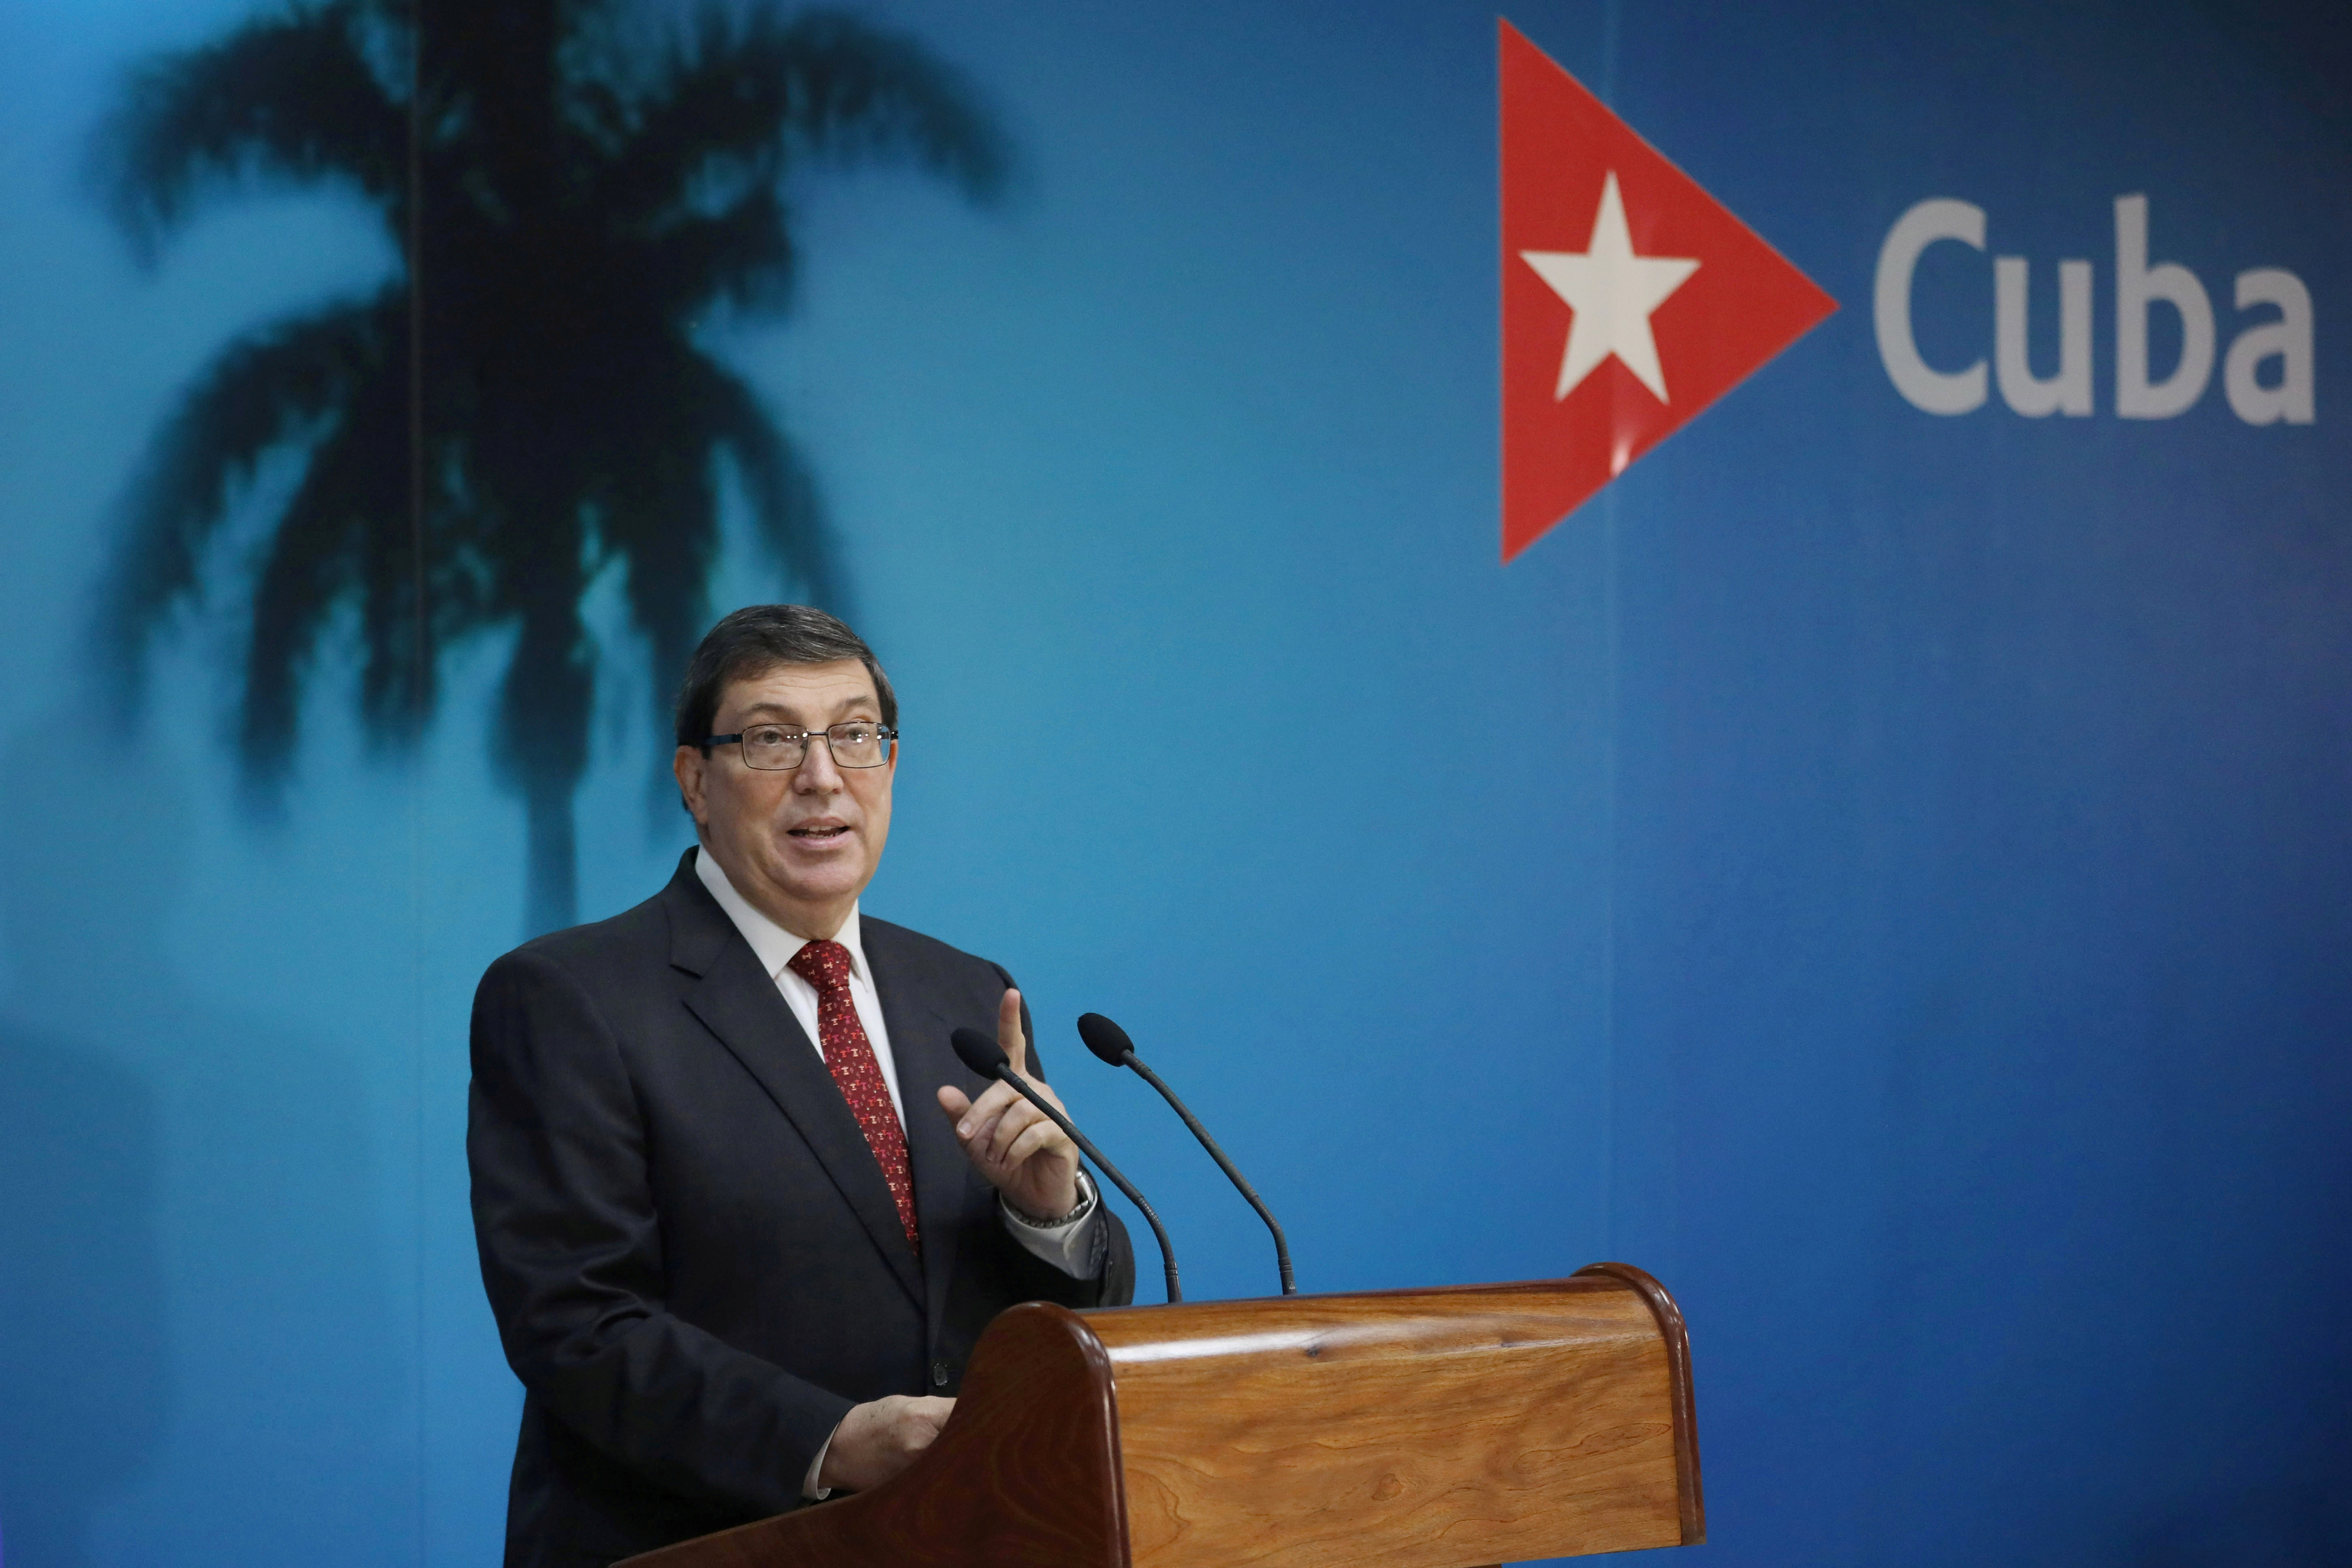 Cuba's Foreign Minister Bruno Rodriguez speaks during a news conference in Havana, Cuba, October 22, 2020. REUTERS/Alexandre Meneghini/Pool/File Photo